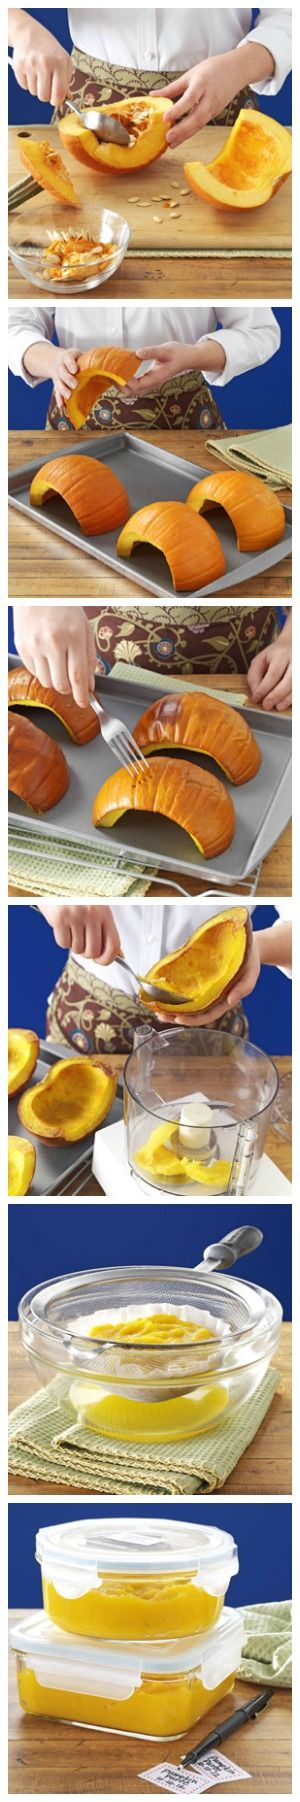 How to Make Pumpkin Puree from Taste of Home